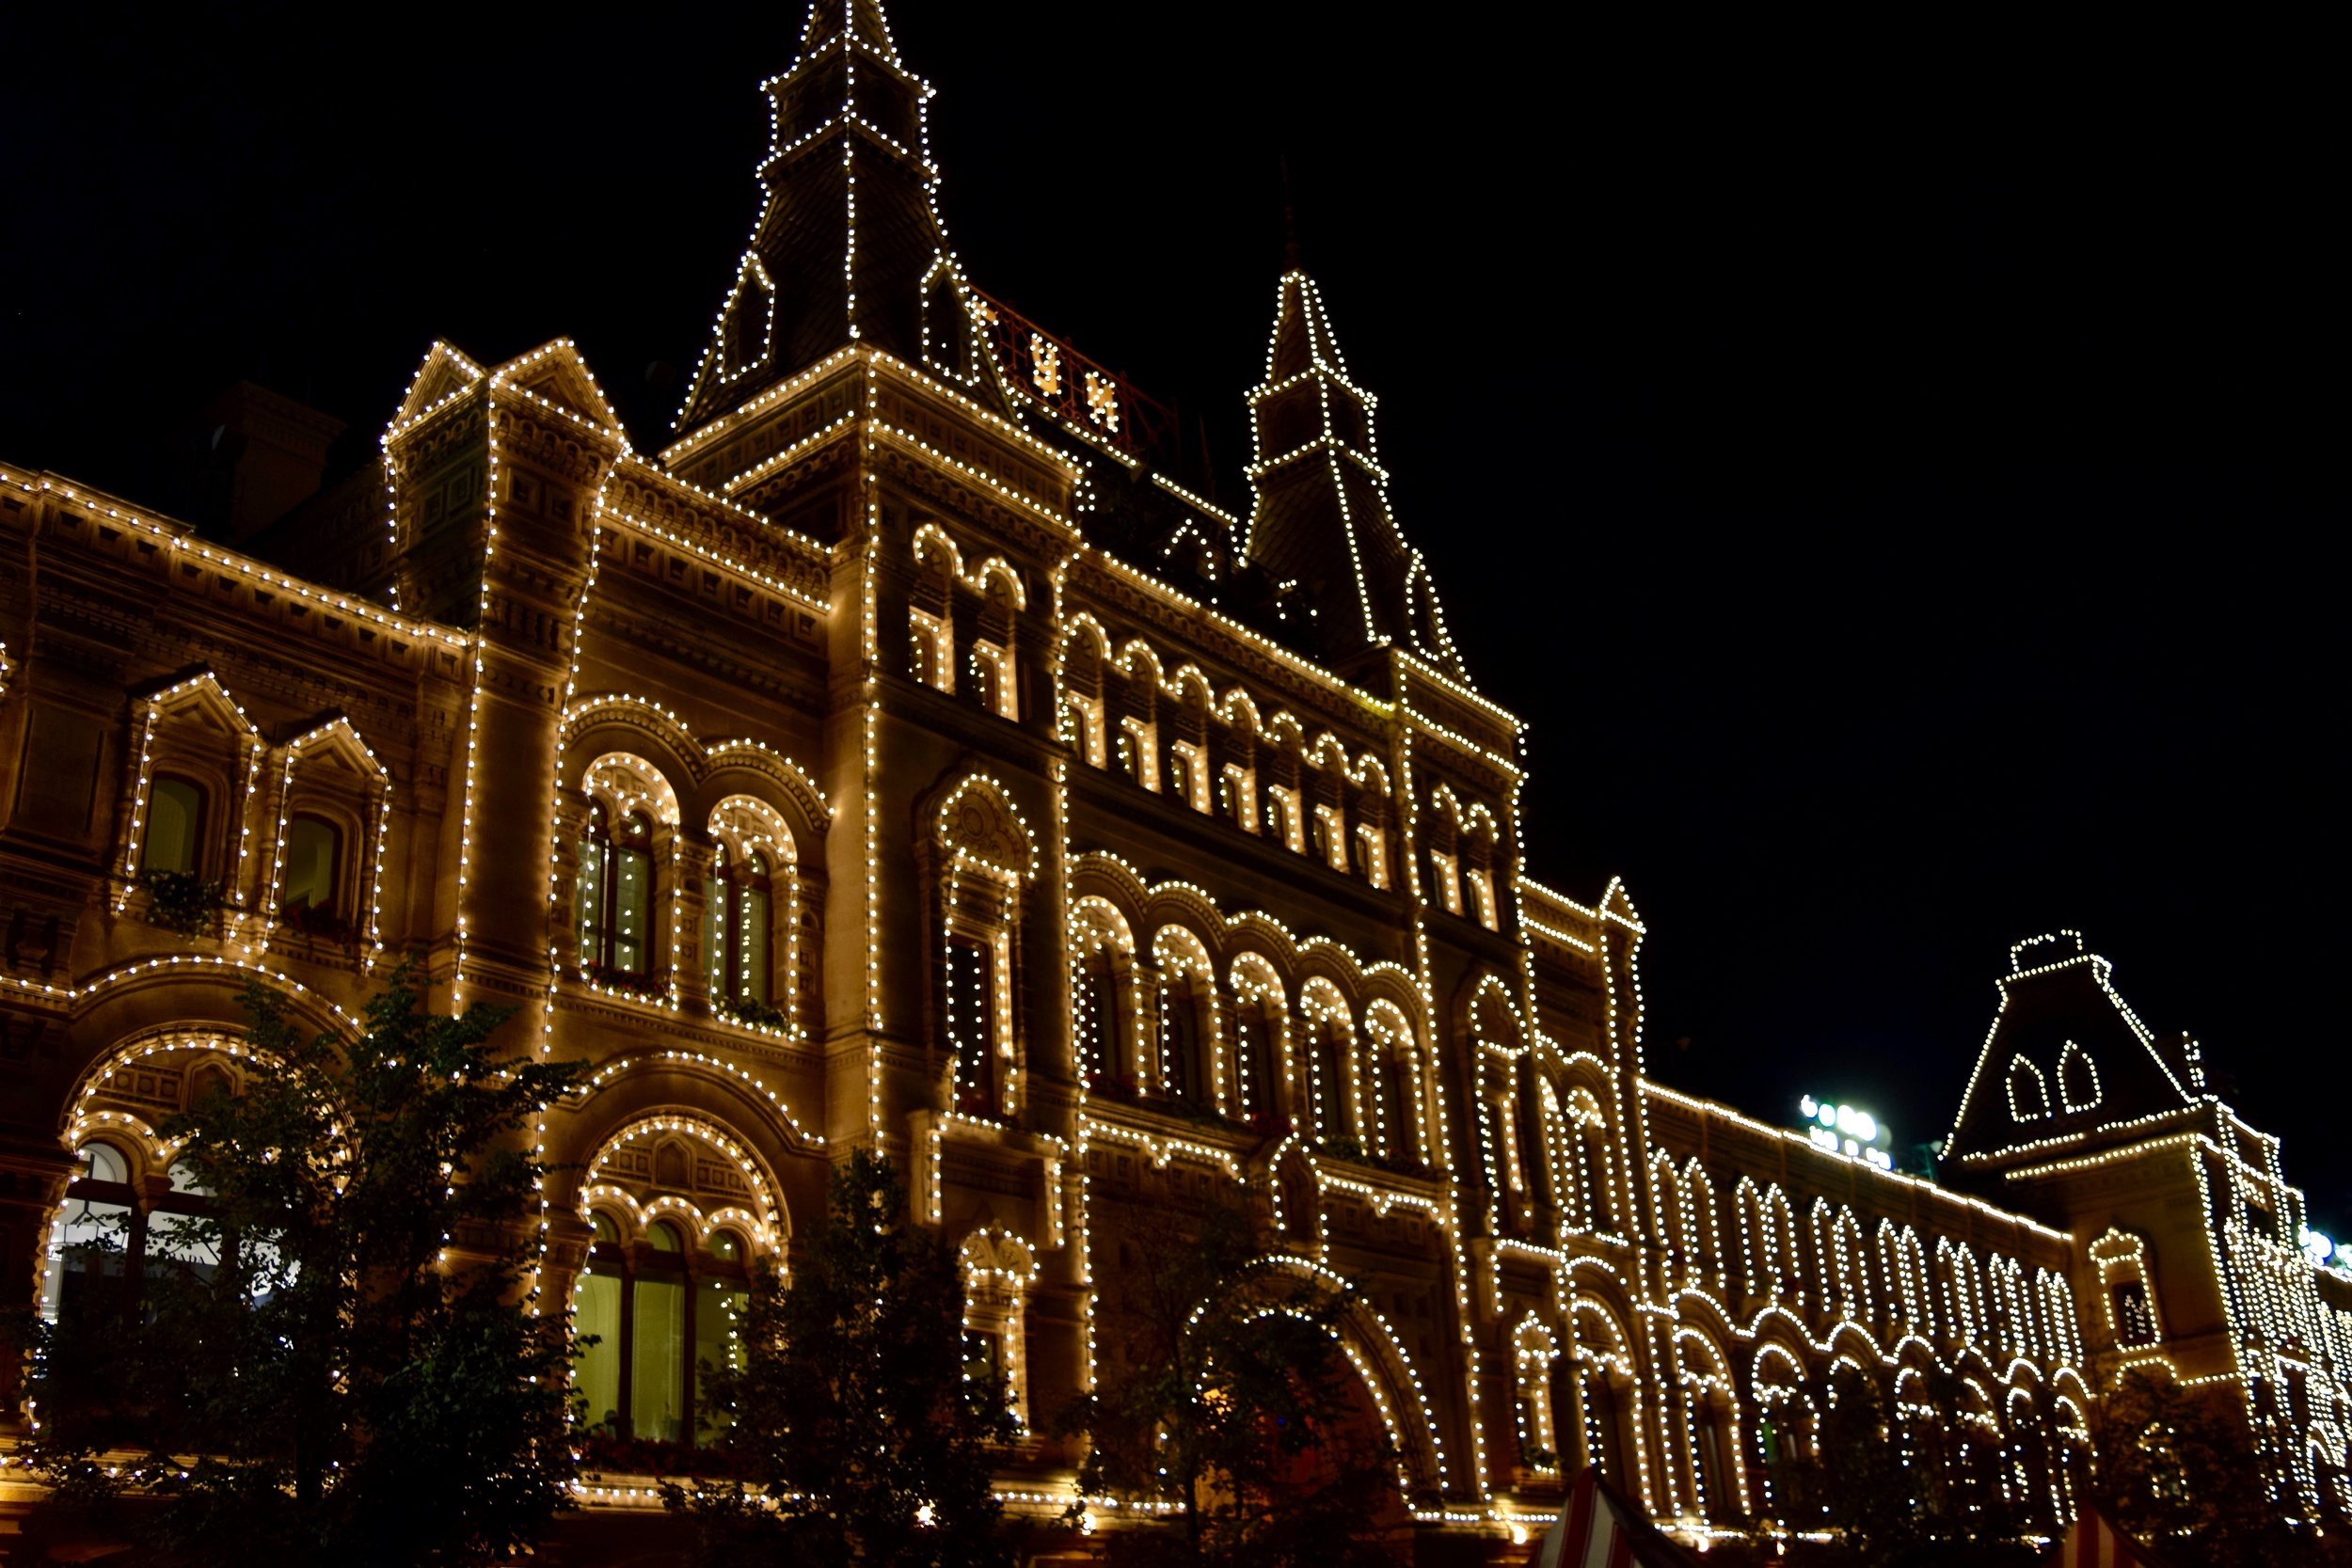 Red Square Moscow at night